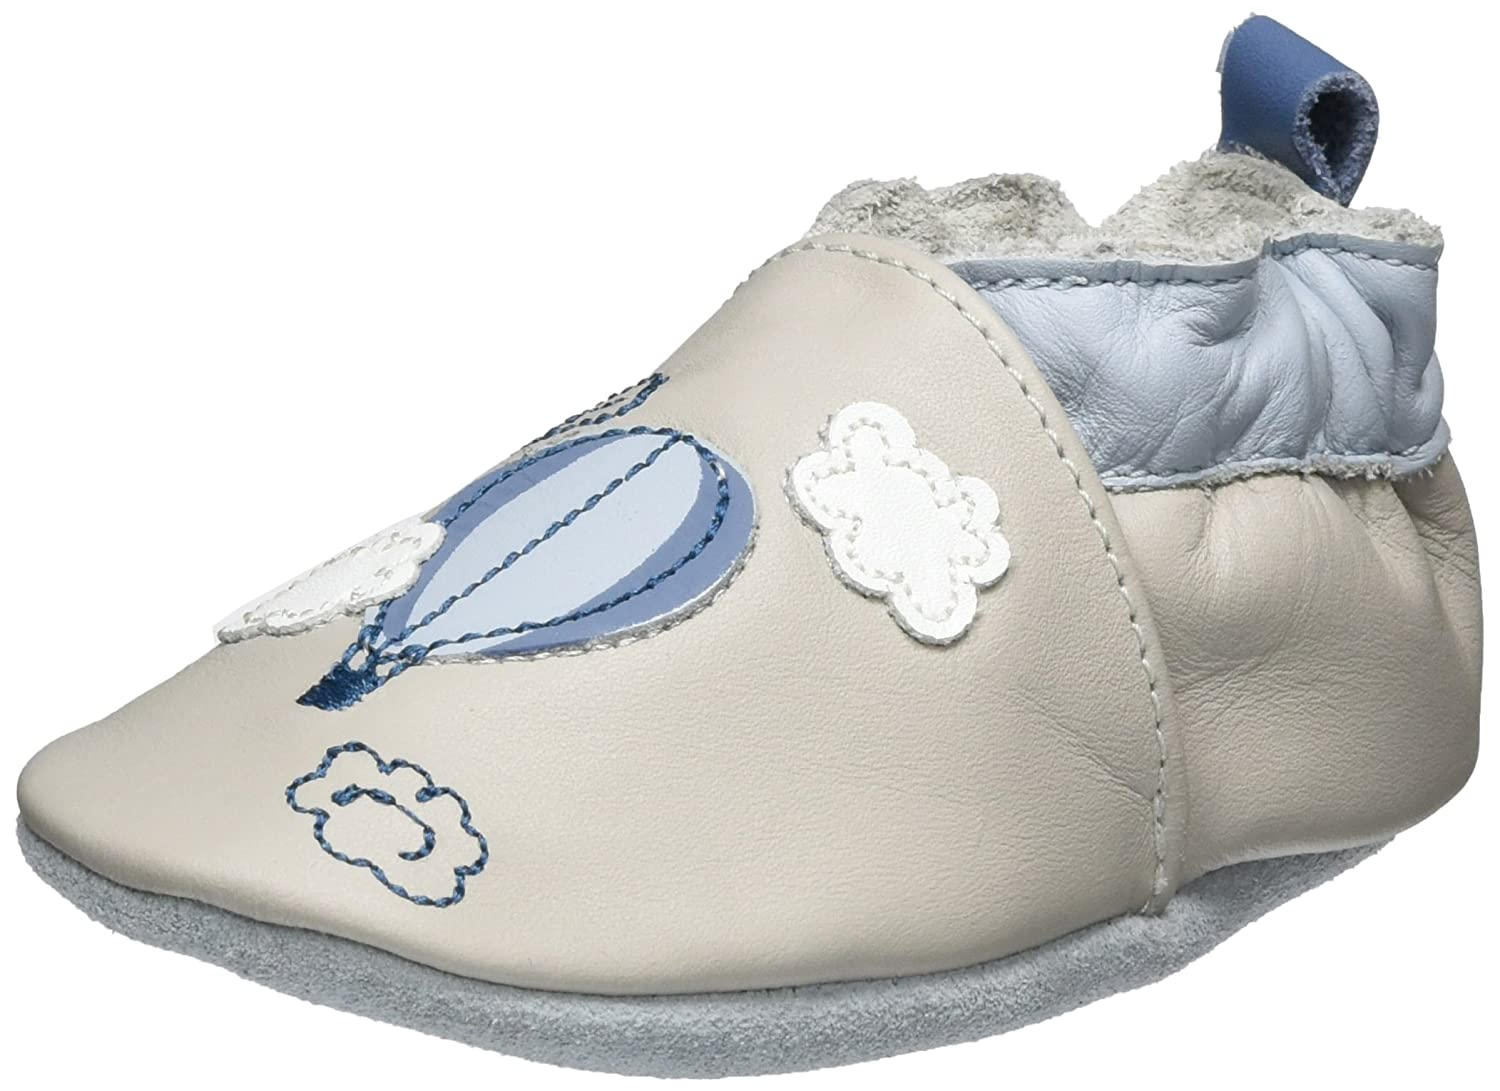 Robeez Baby Boys' in The Sky Slippers 565970-10